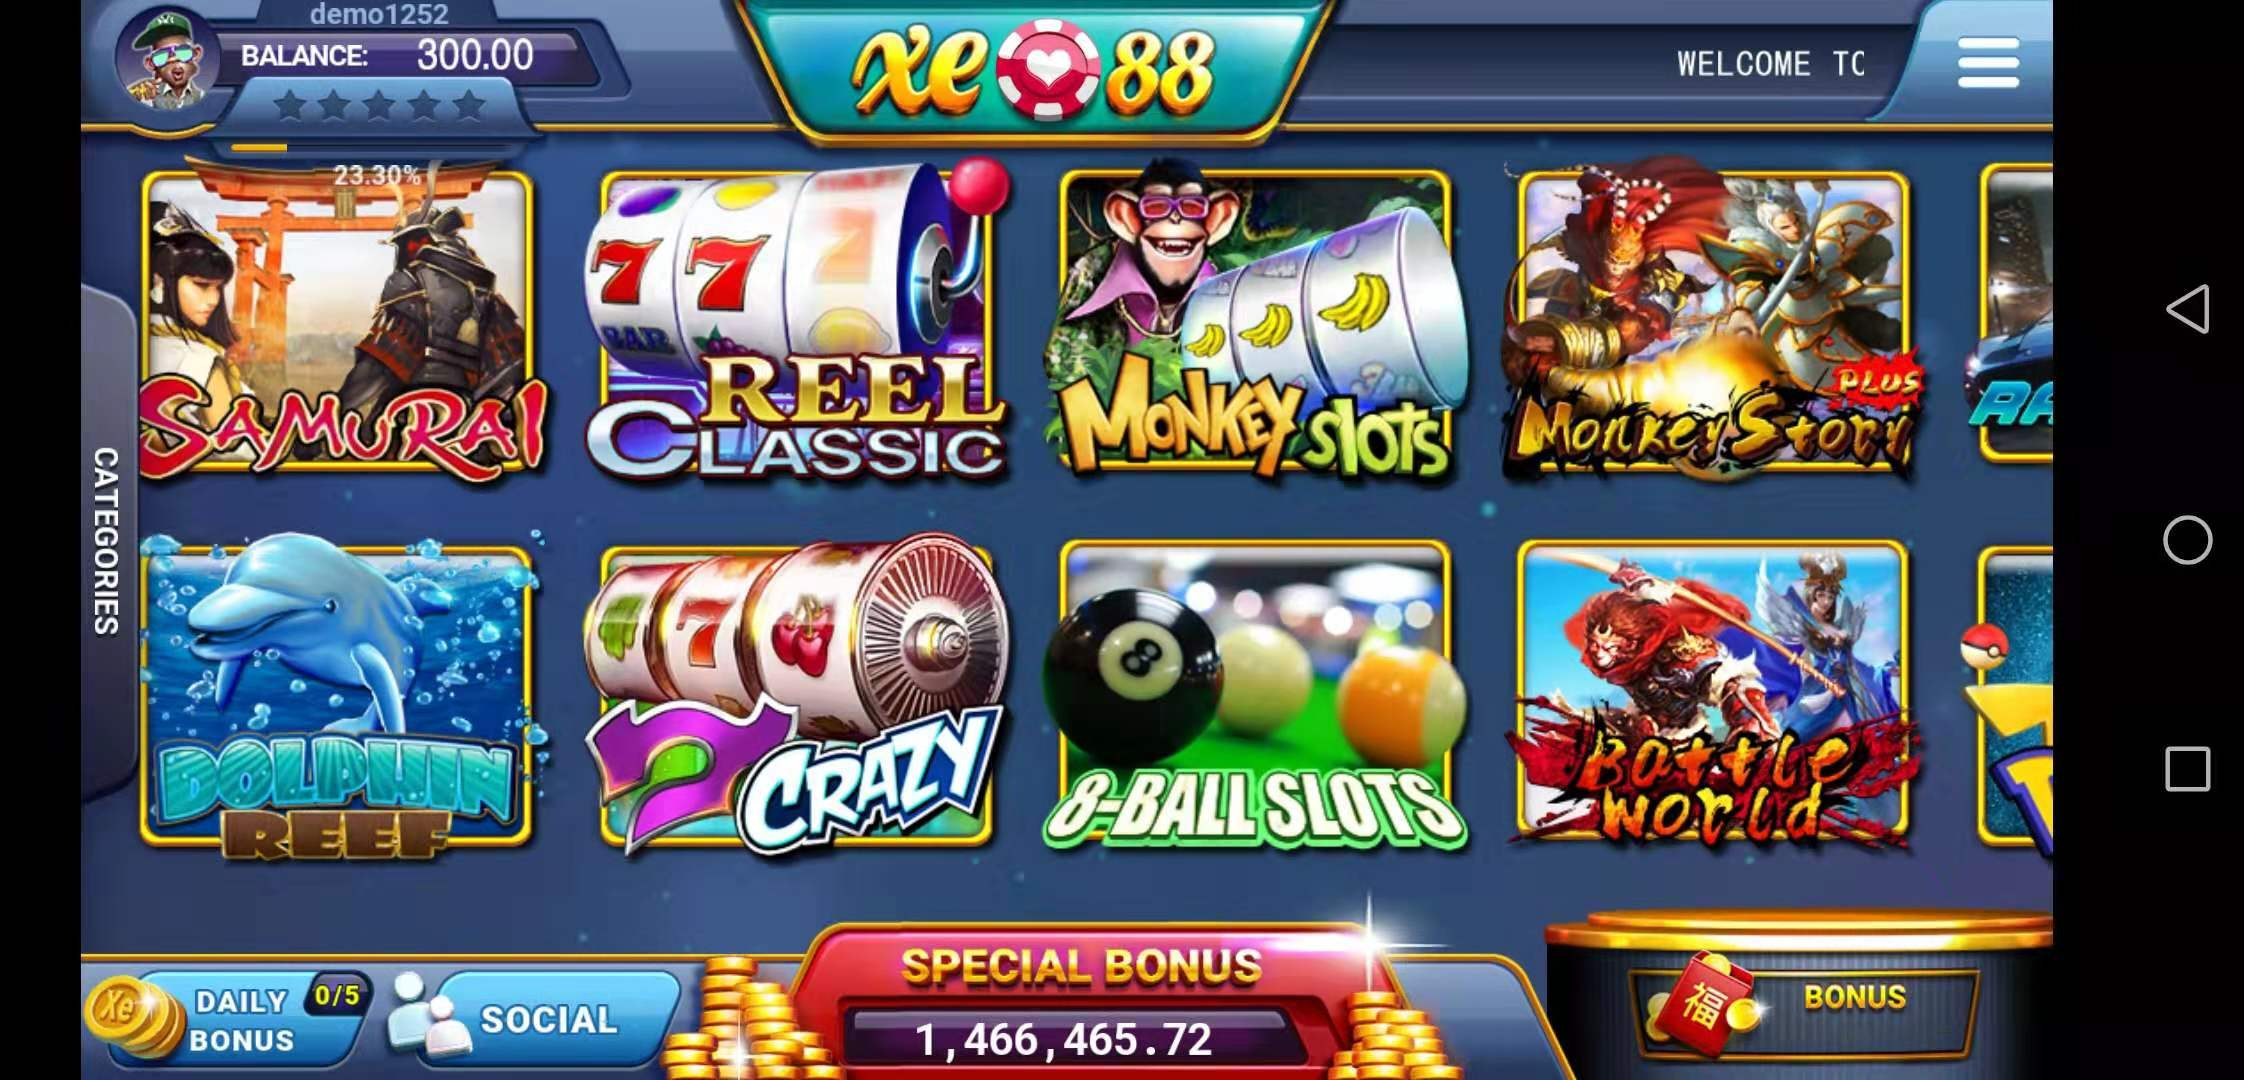 Overview of Funky Monkey Classic Online Slot in XE 88 Malaysia Betting Casino by Liveslot77